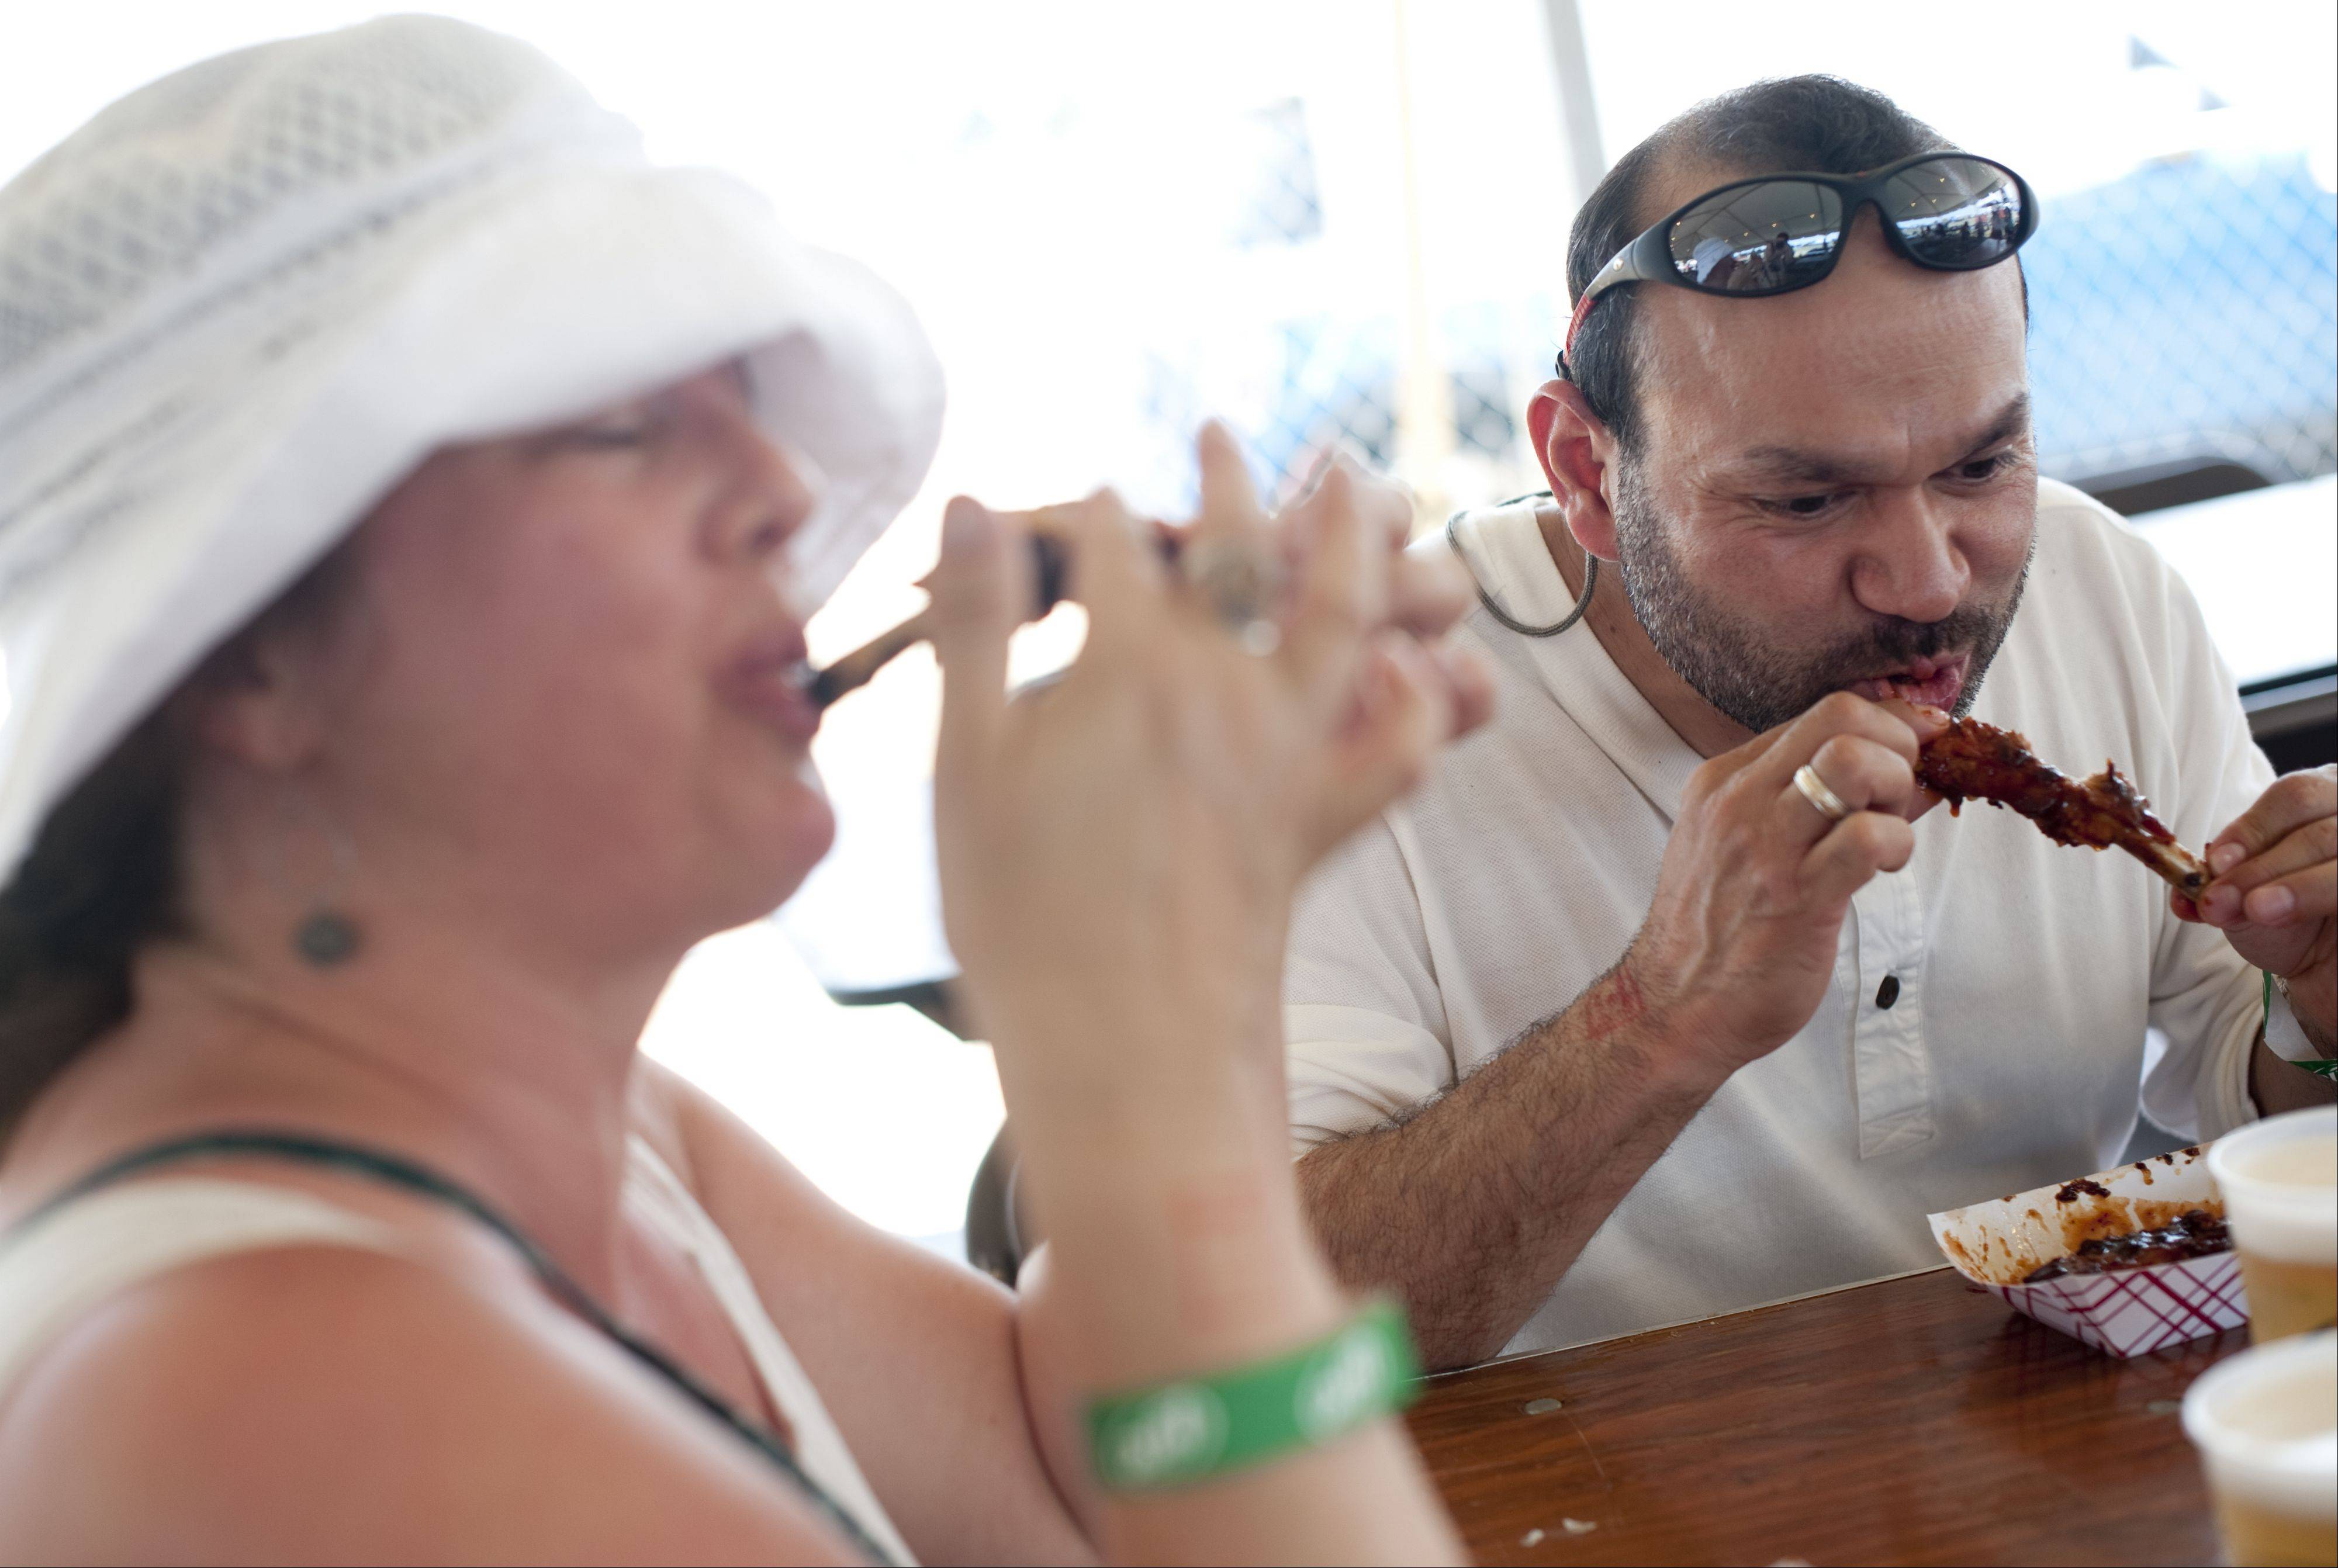 Linda Meyer and Miguel Bautista of Cary enjoy ribs from Armadillo's BBQ Saturday at the Lake in the Hills Rockin' Ribfest in Sunset Park.